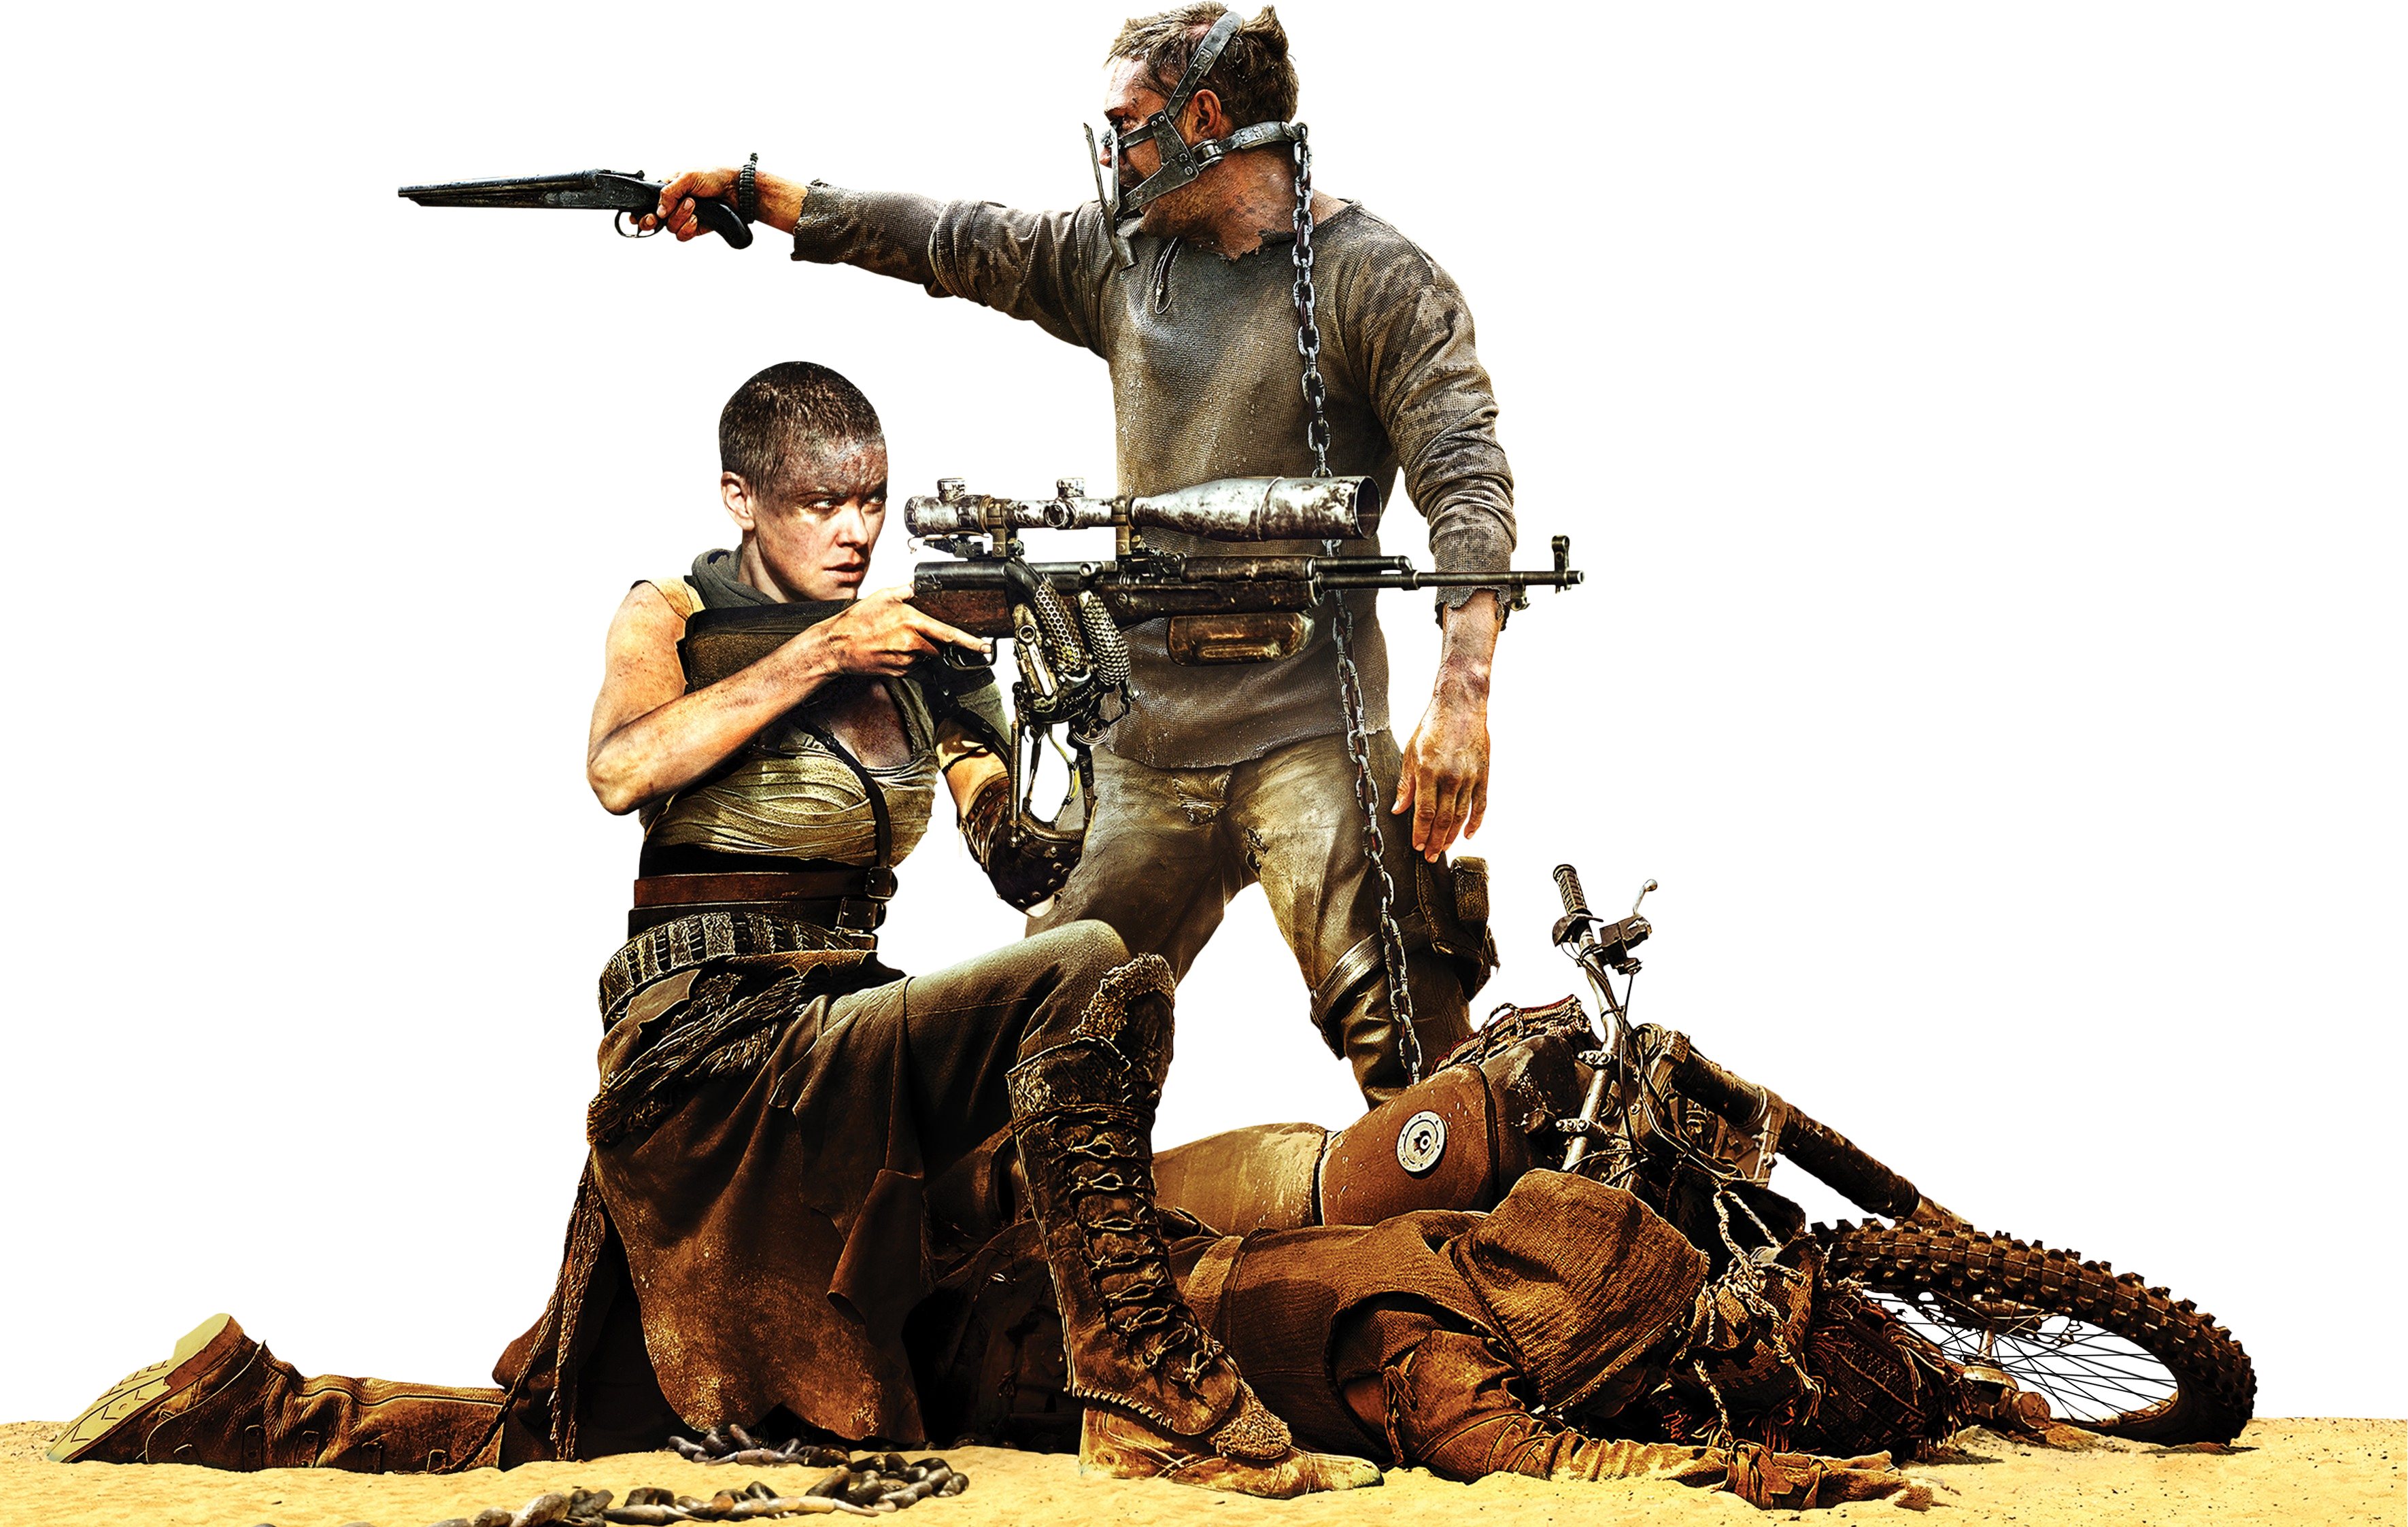 . PlusPng.com Mad Max Fury Road Render 3541x2246 by sachso74 - Mad Max PNG